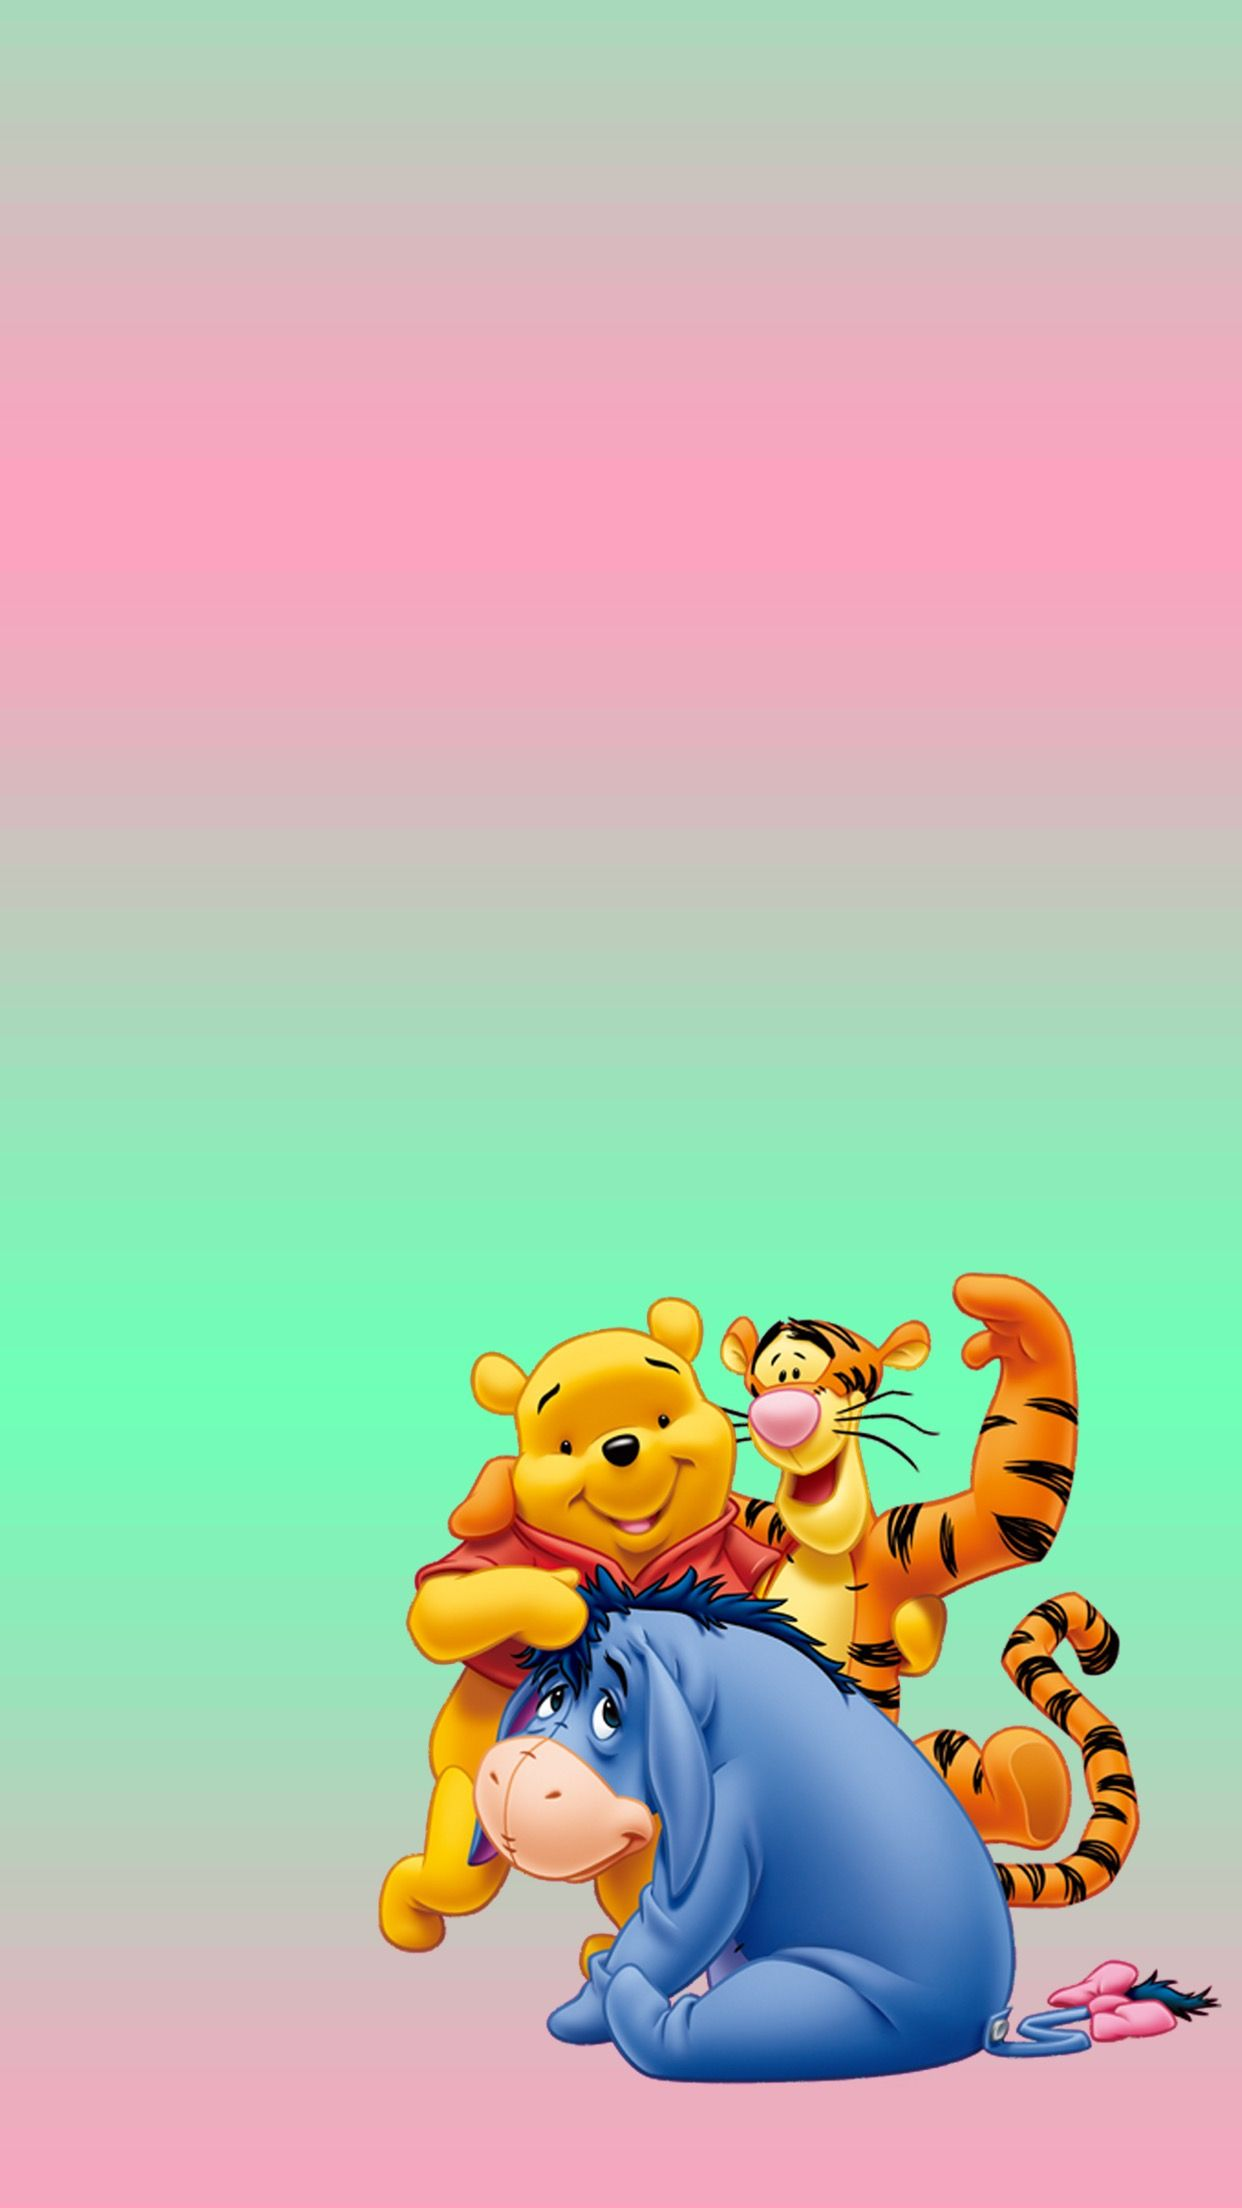 Pin on The Pooh